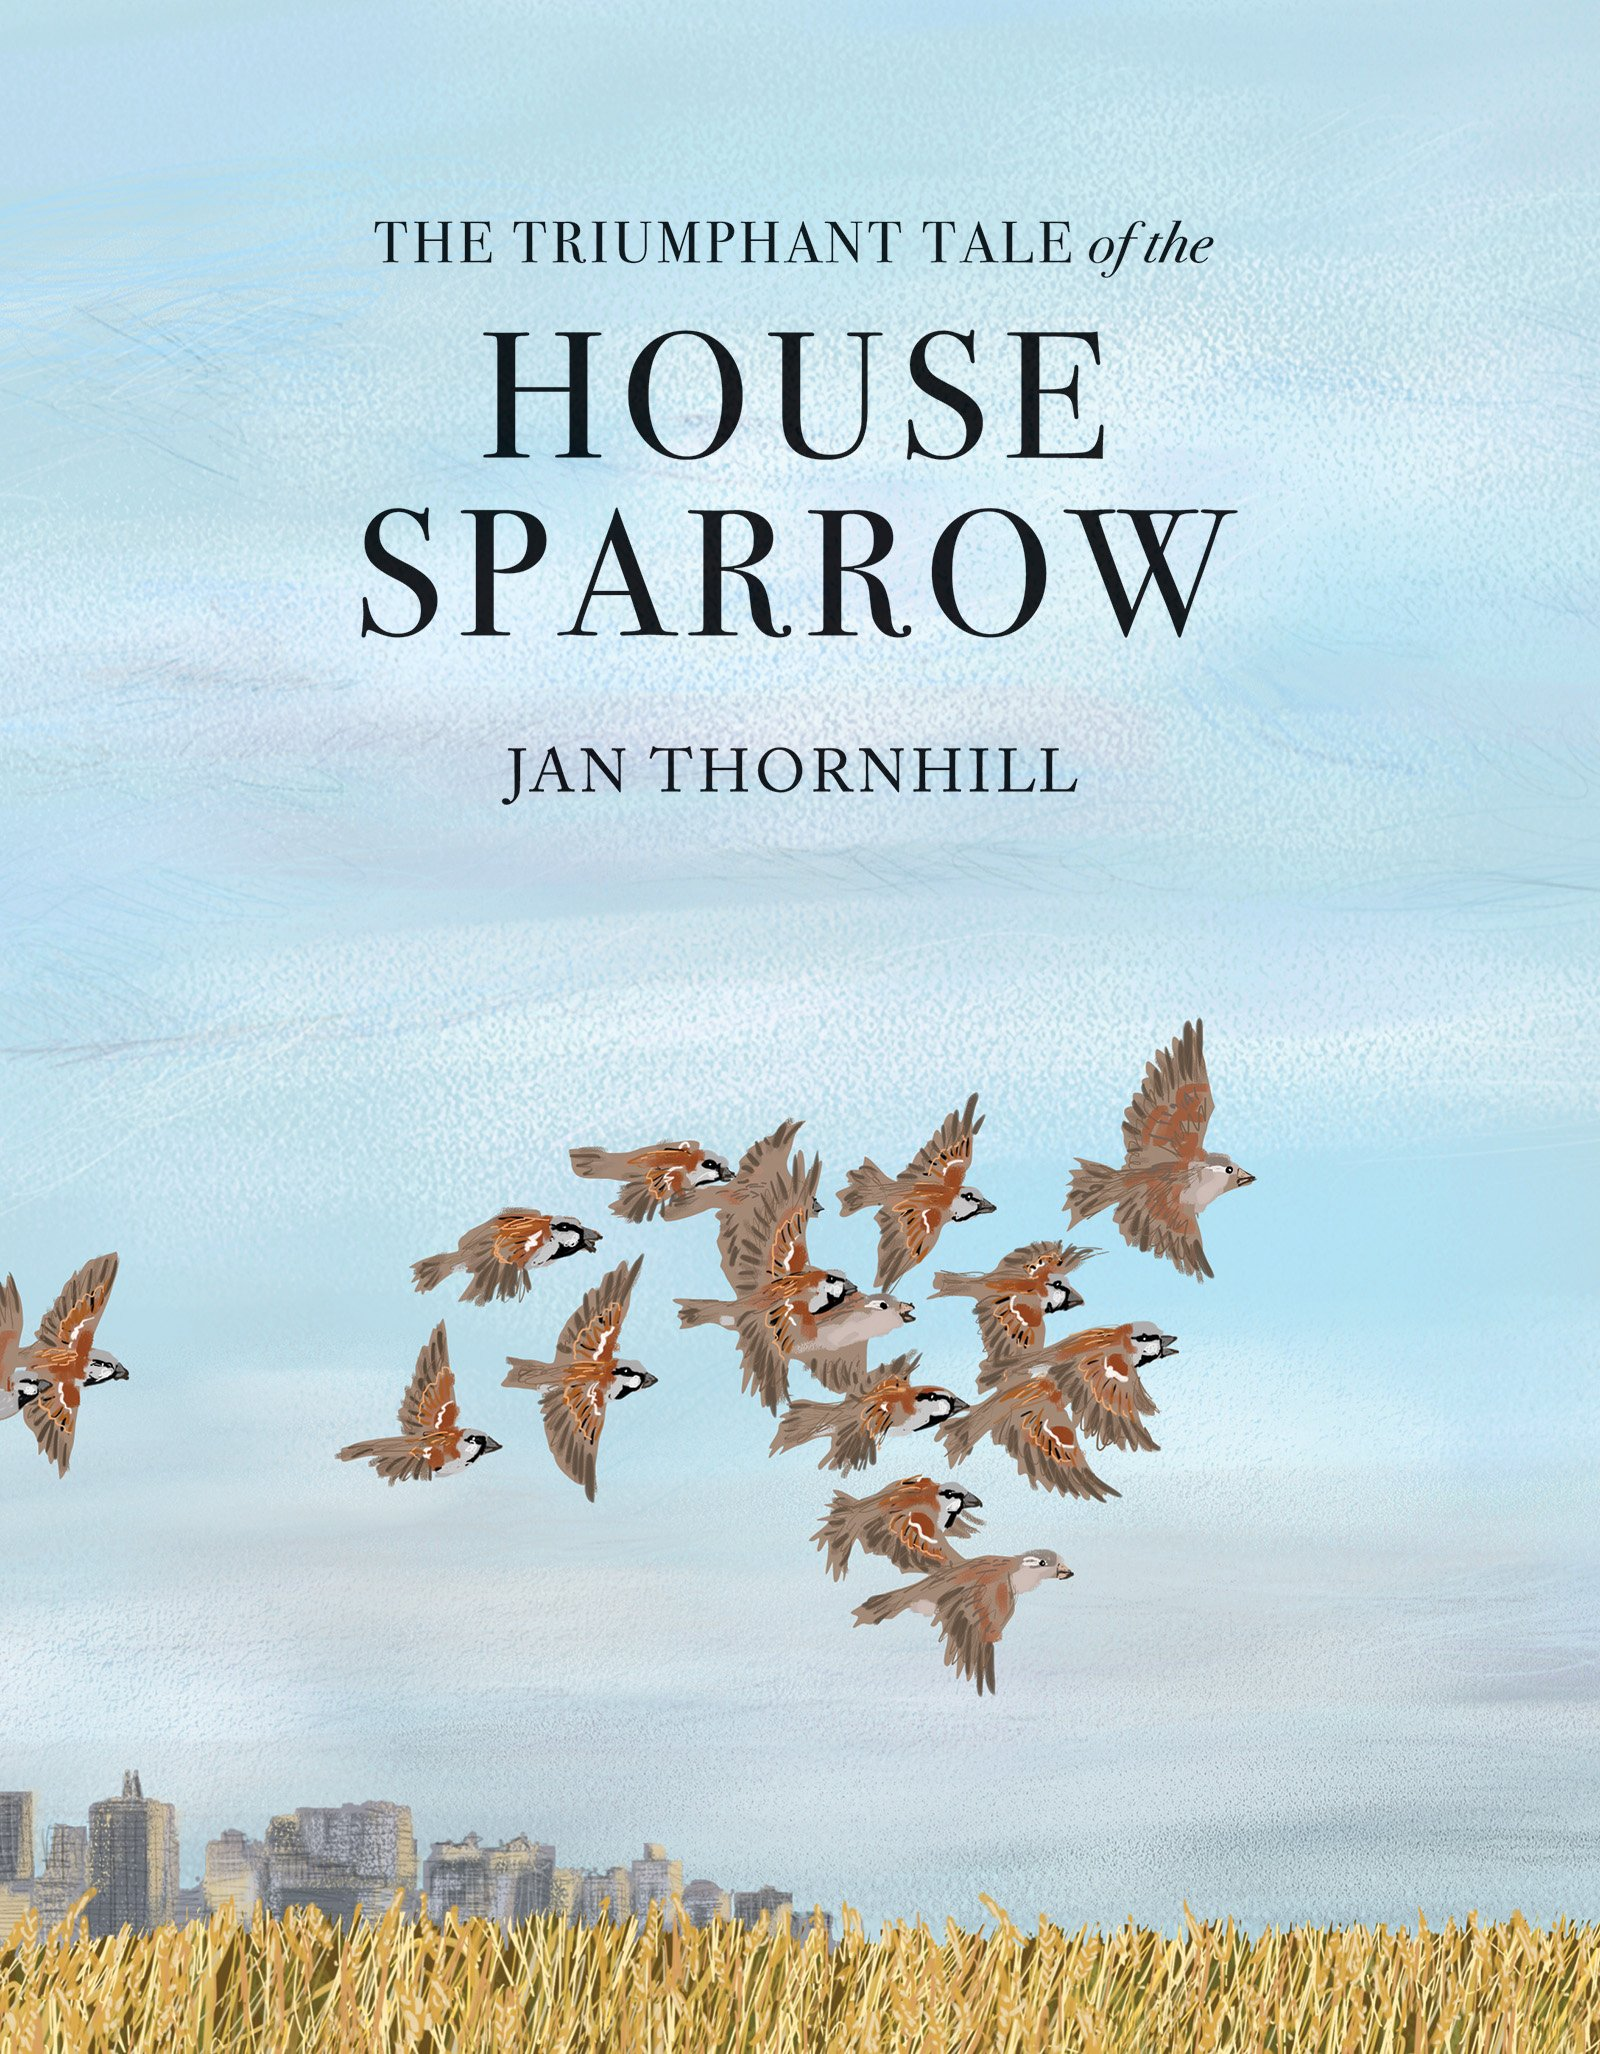 The Triumphant Tale of the House Sparrow | SLJ Review